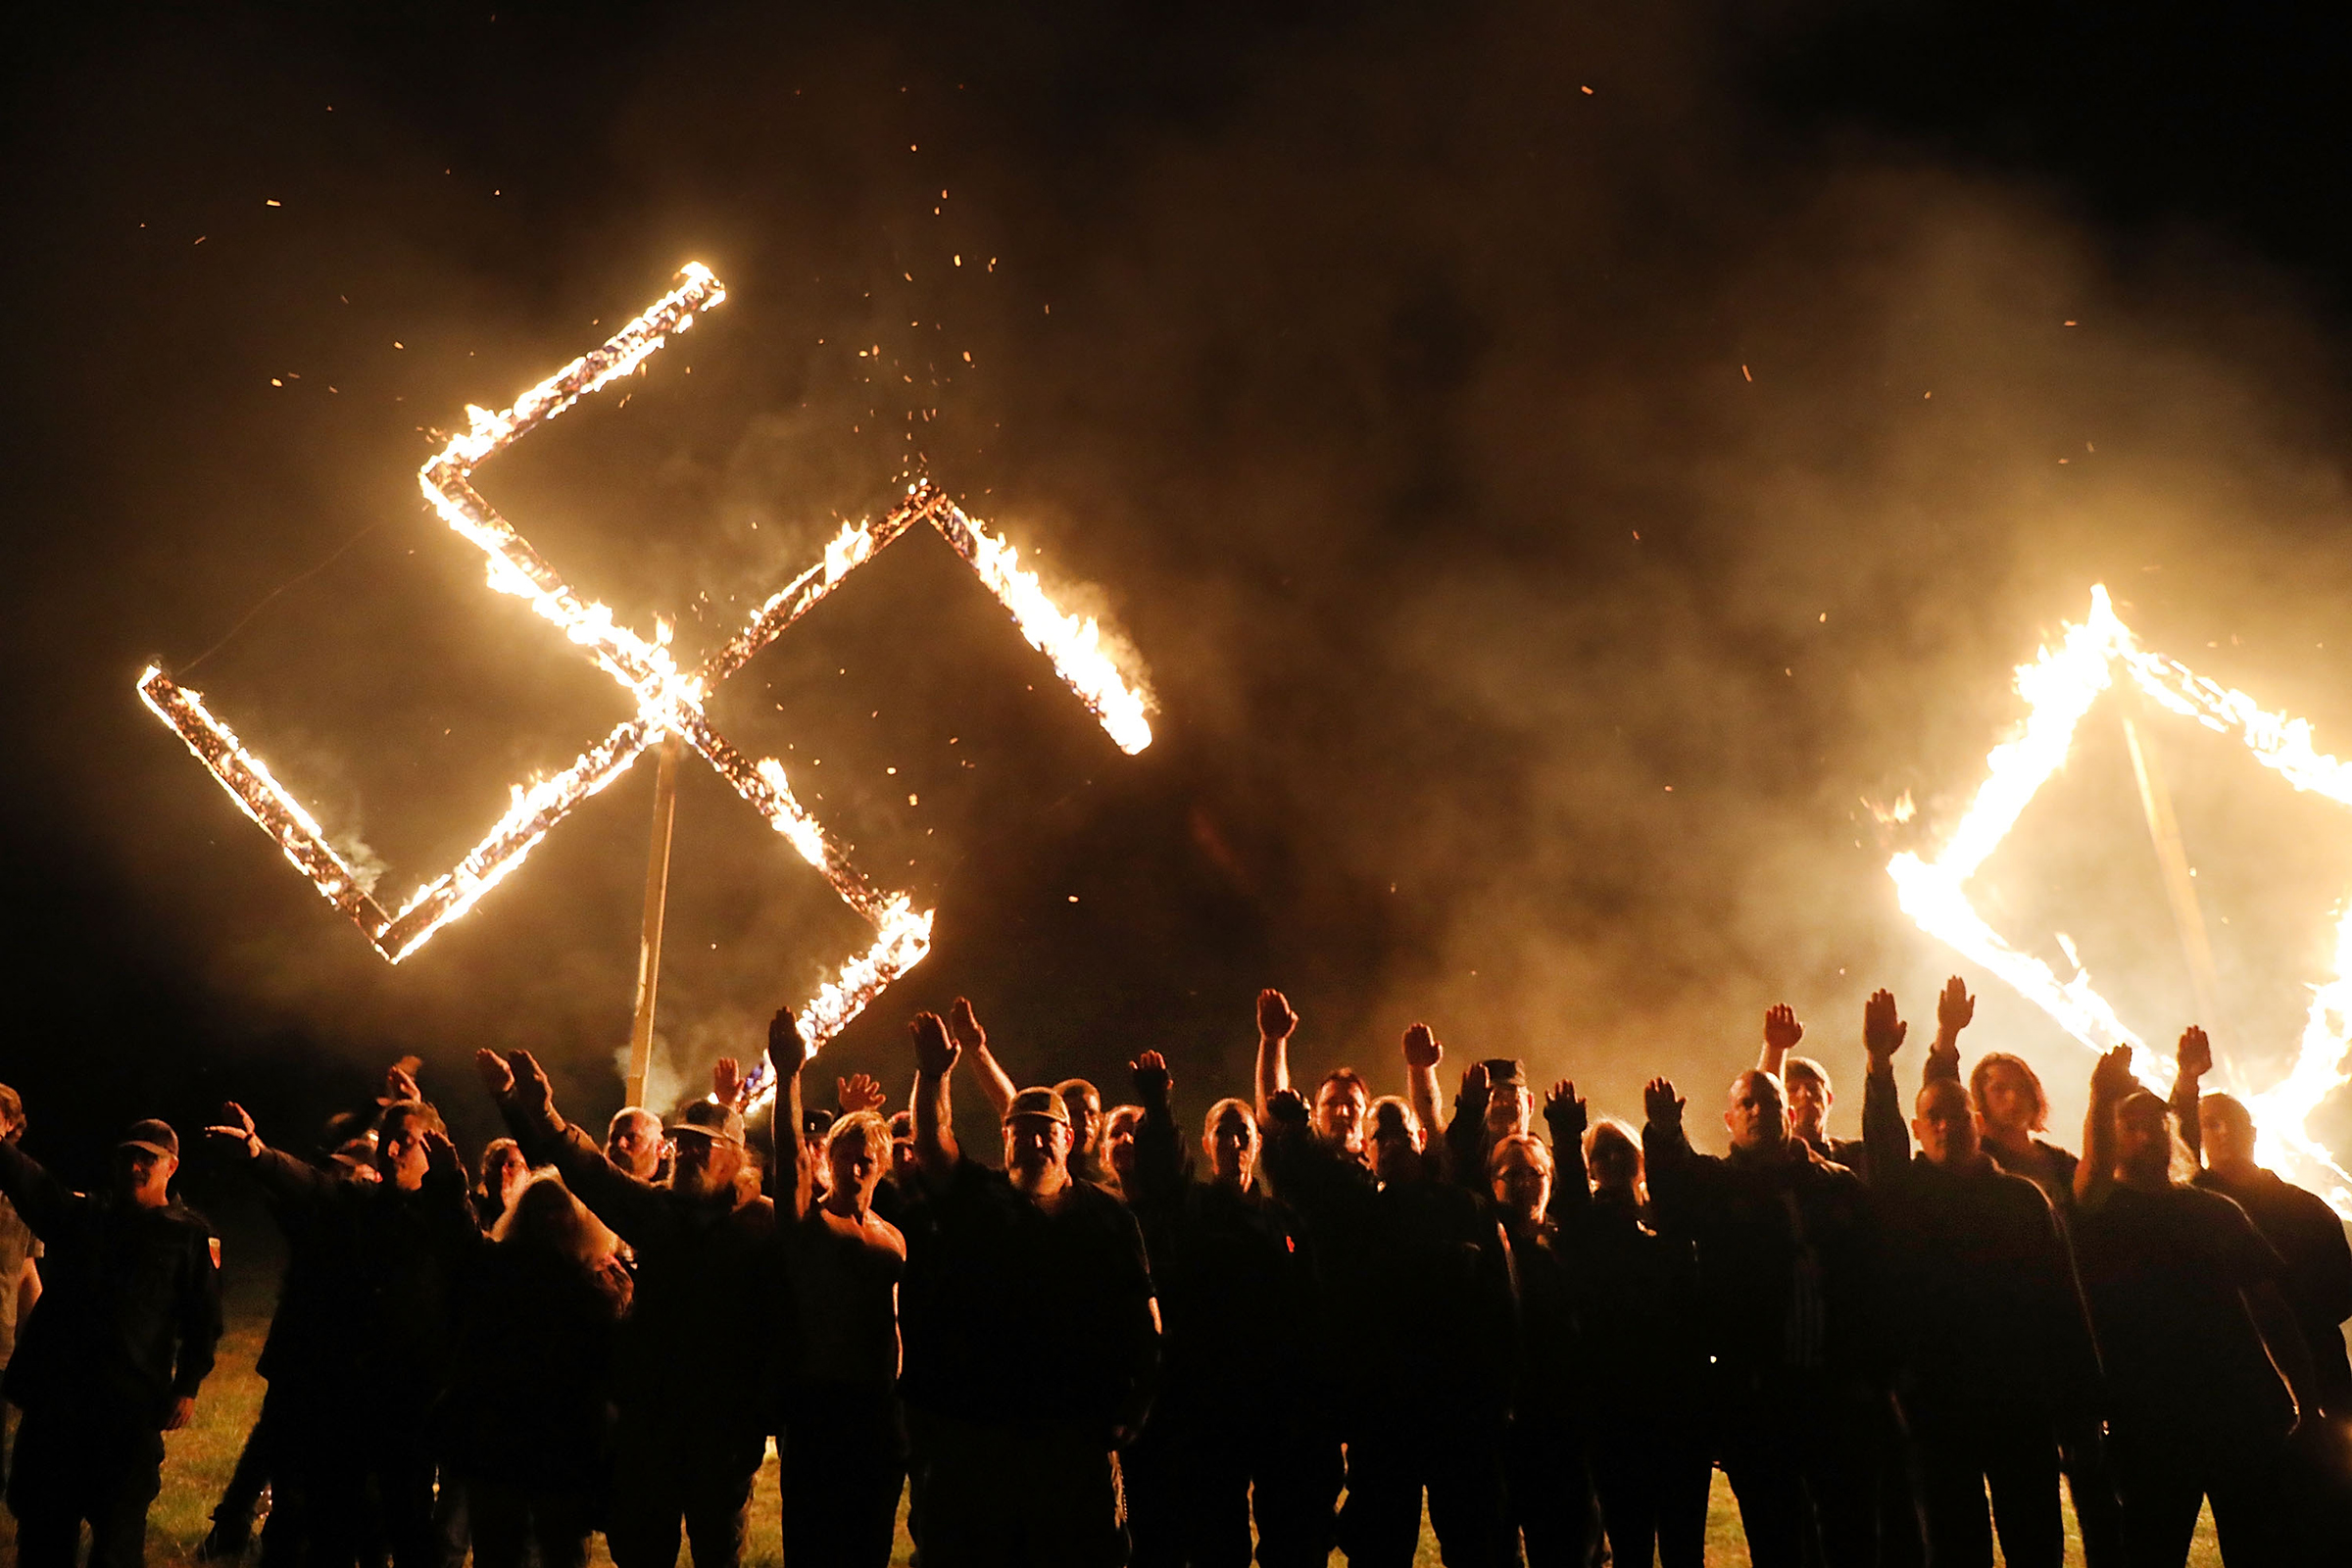 Members  of the National Socialist Movement, one of the largest neo-Nazi groups in the US, hold a swastika burning on April 21, 2018 in Draketown, Georgia.